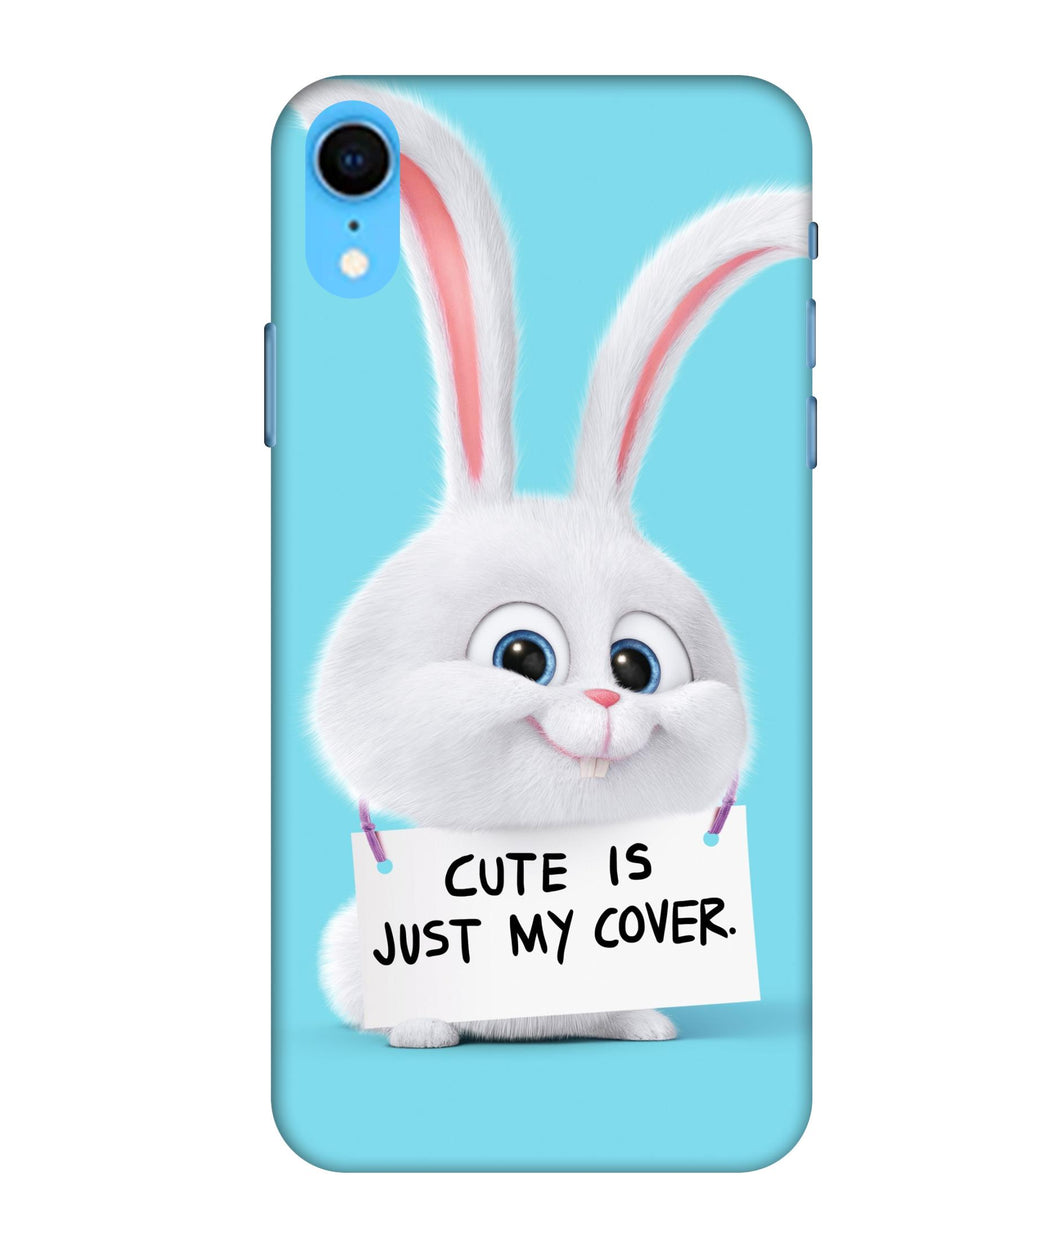 Apple Iphone XR Bunny mobile cover